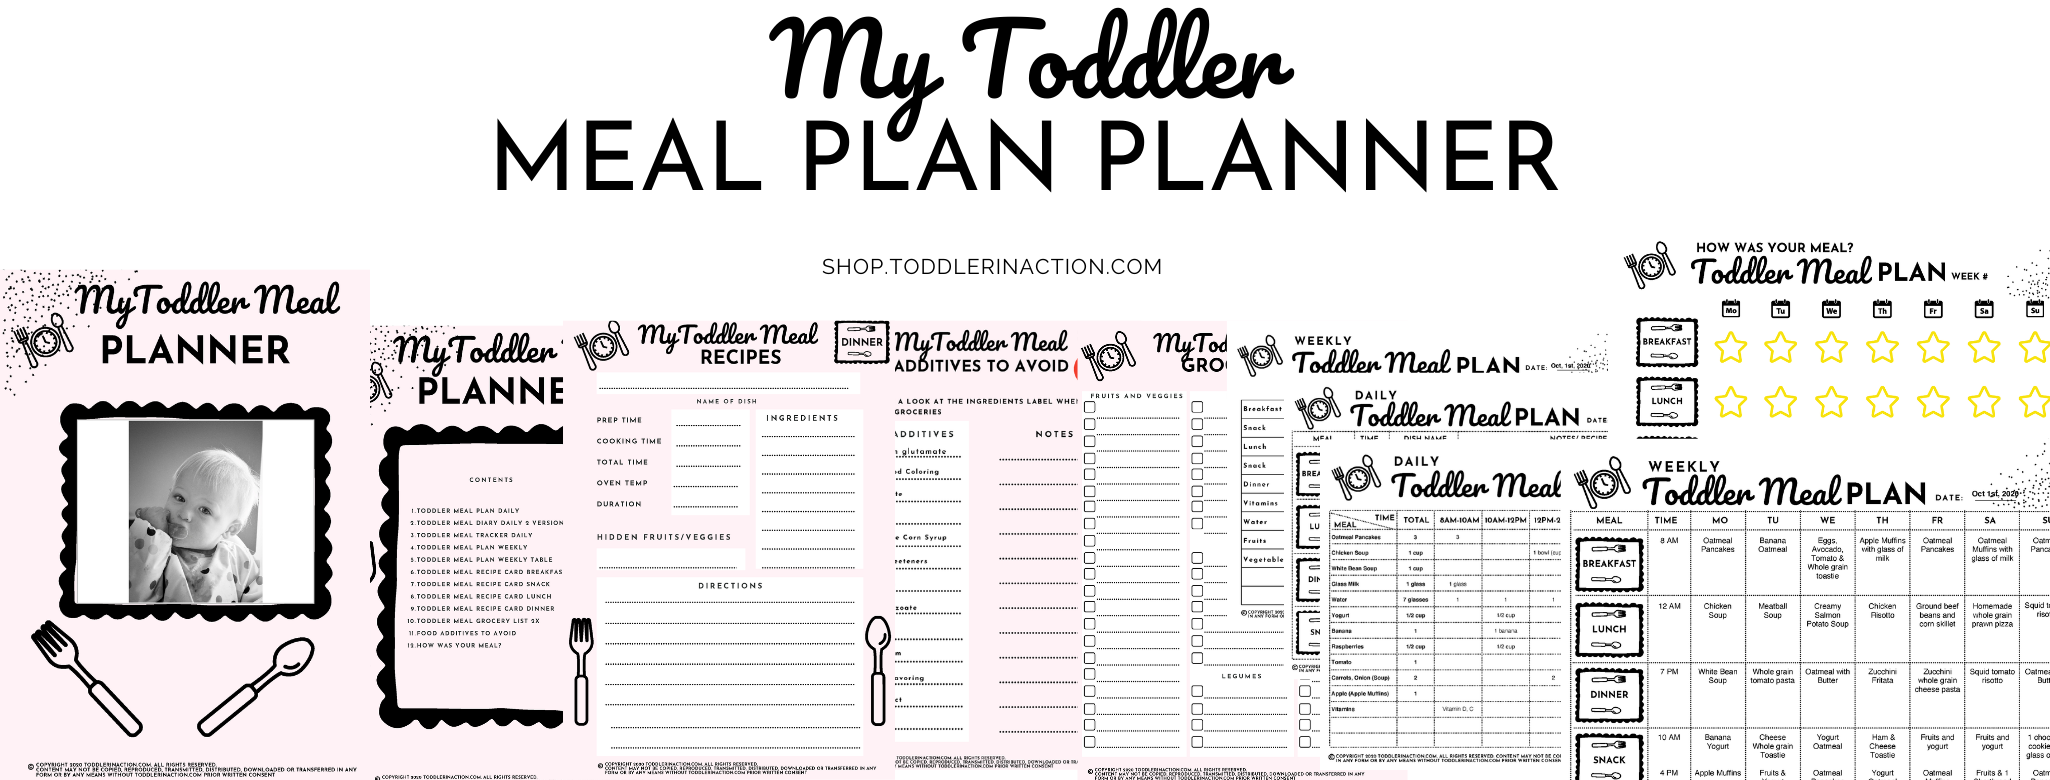 Toddler Meal Plan Printable